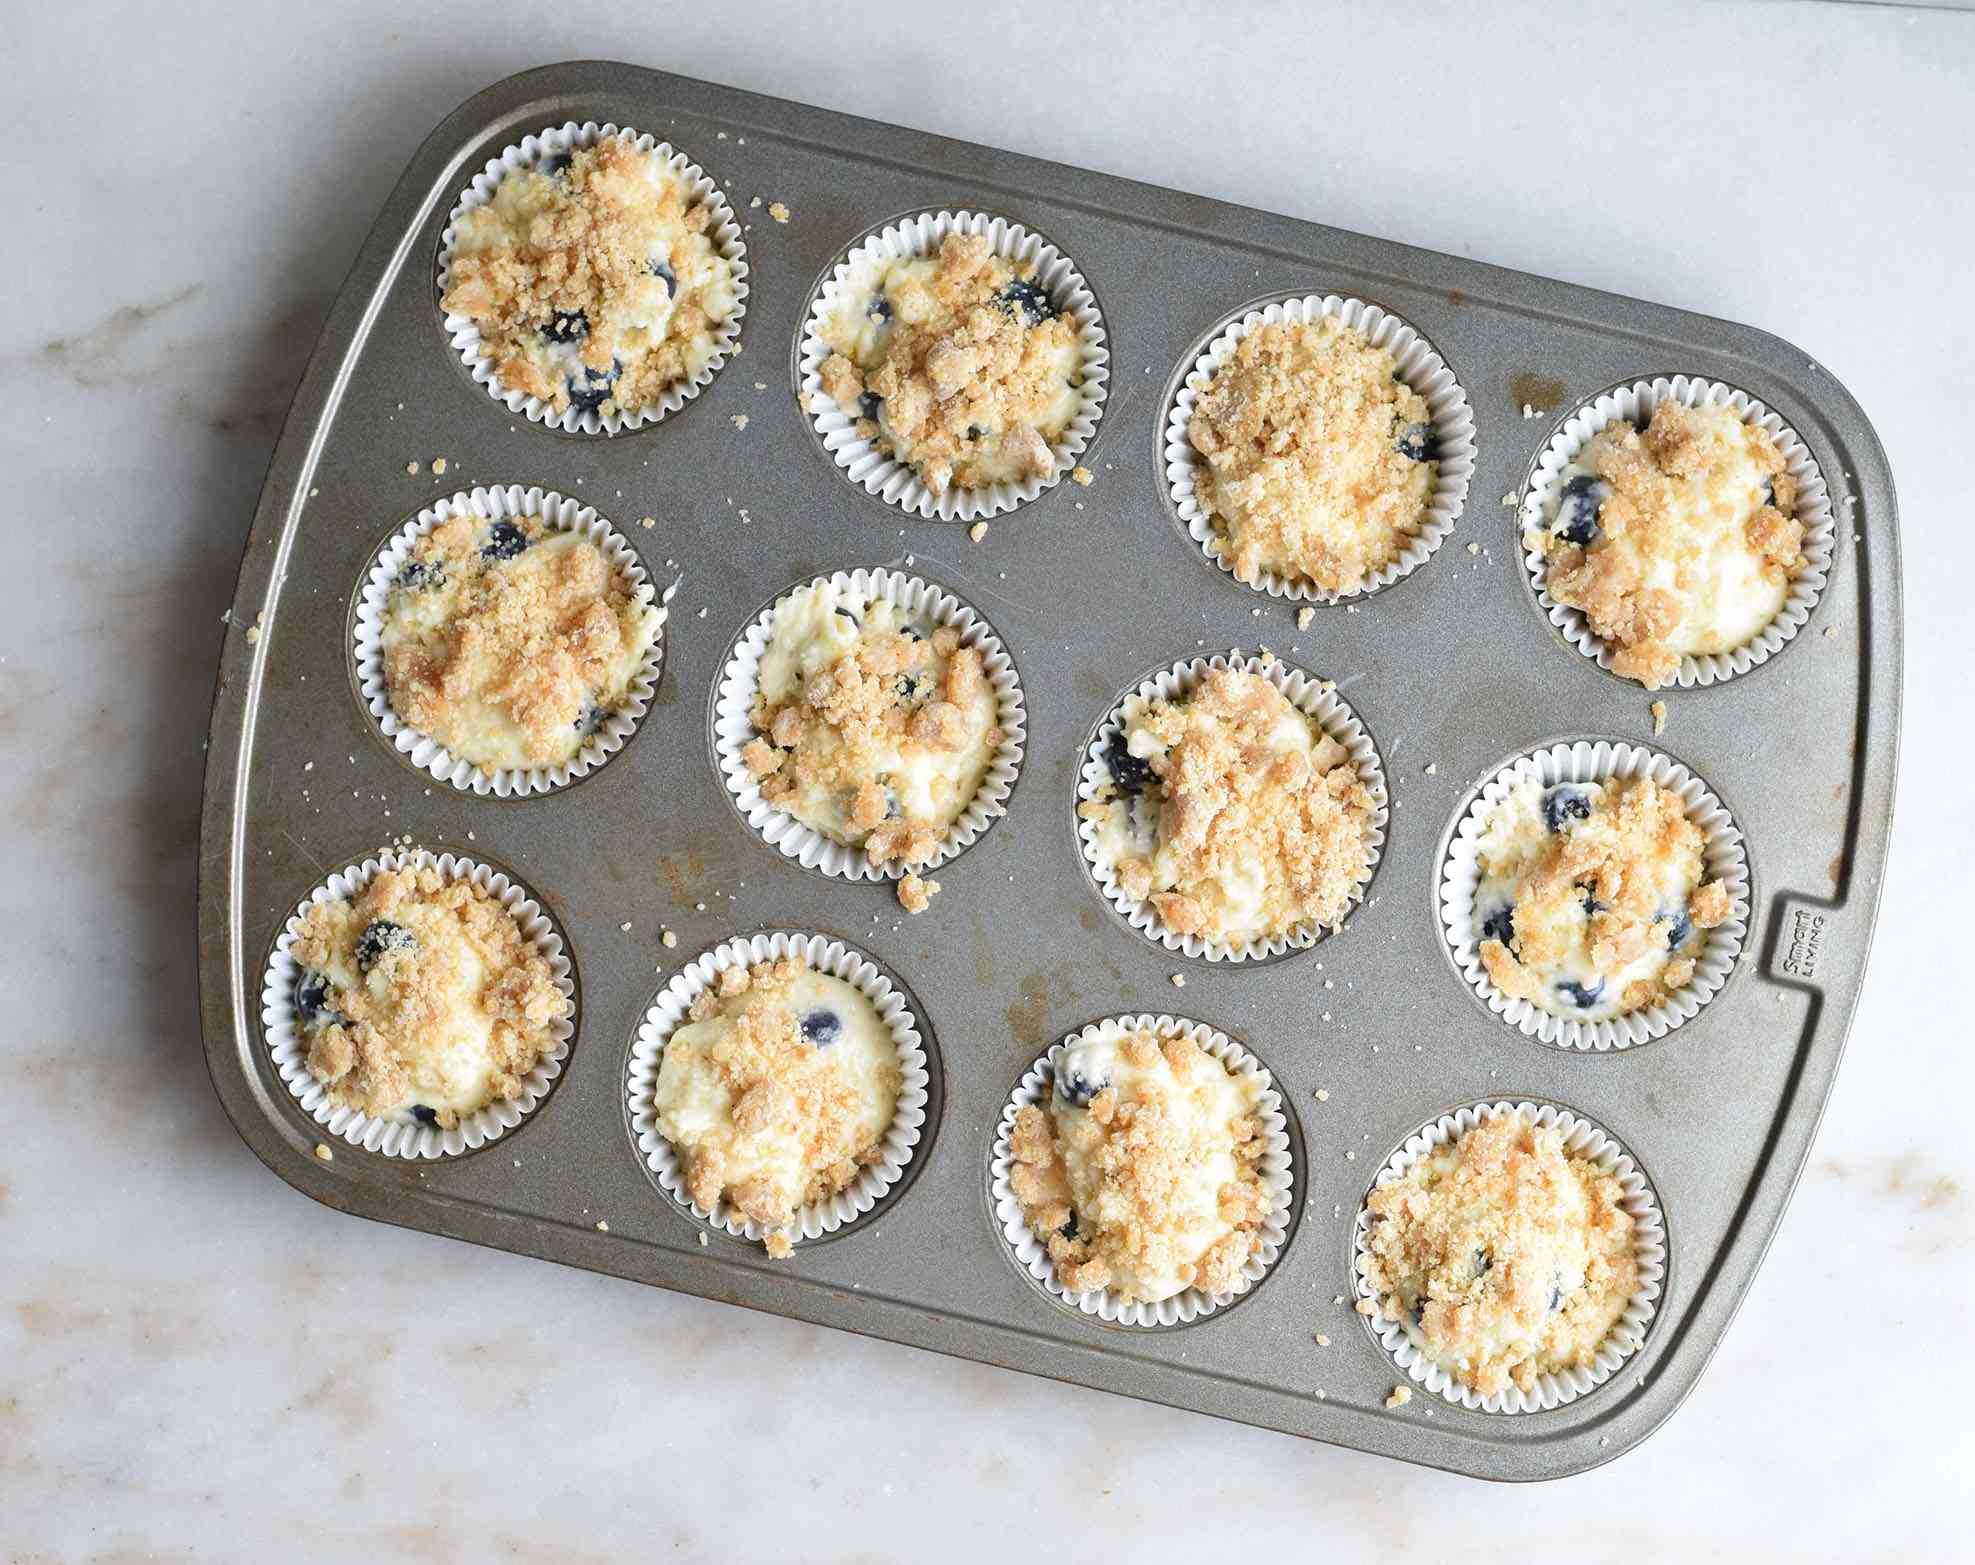 muffin batter topped with streusel topping